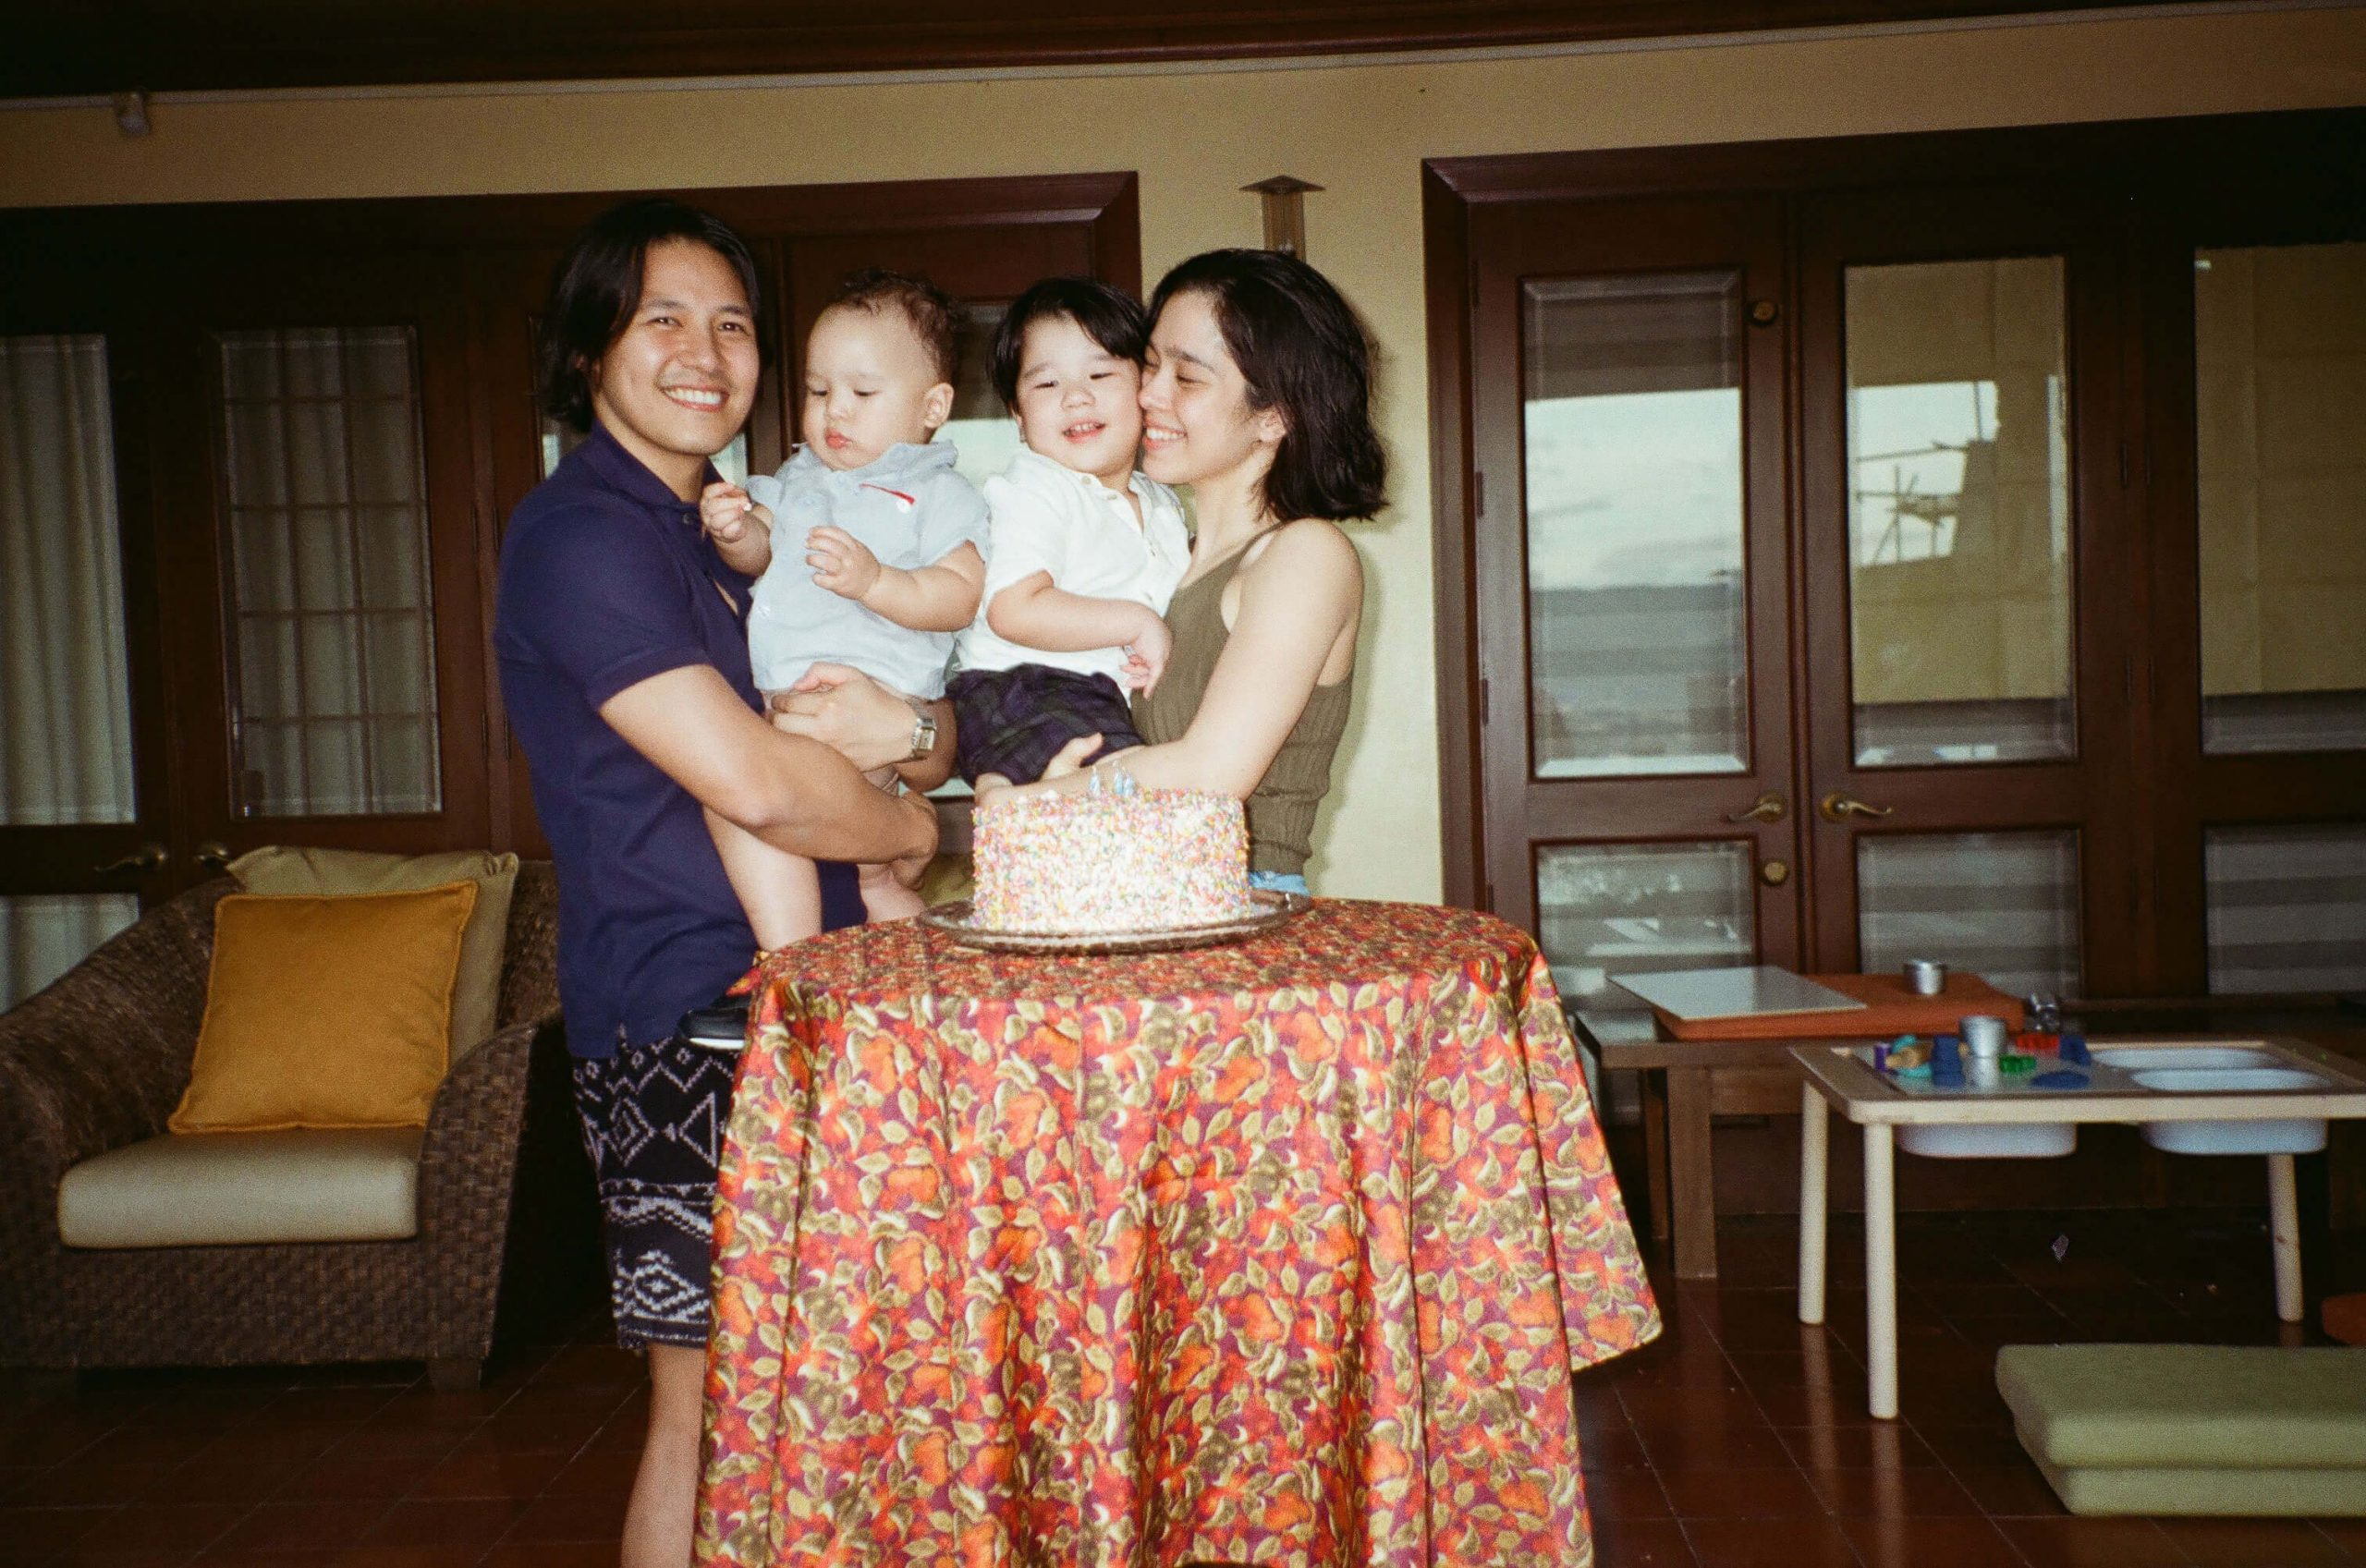 Saab Magalona-Bacarro and her family. The singer, blogger, and podcaster has been juggling work while bonding with her sons Pancho and Vito through fun activities such as swimming, playing, and even cooking together.